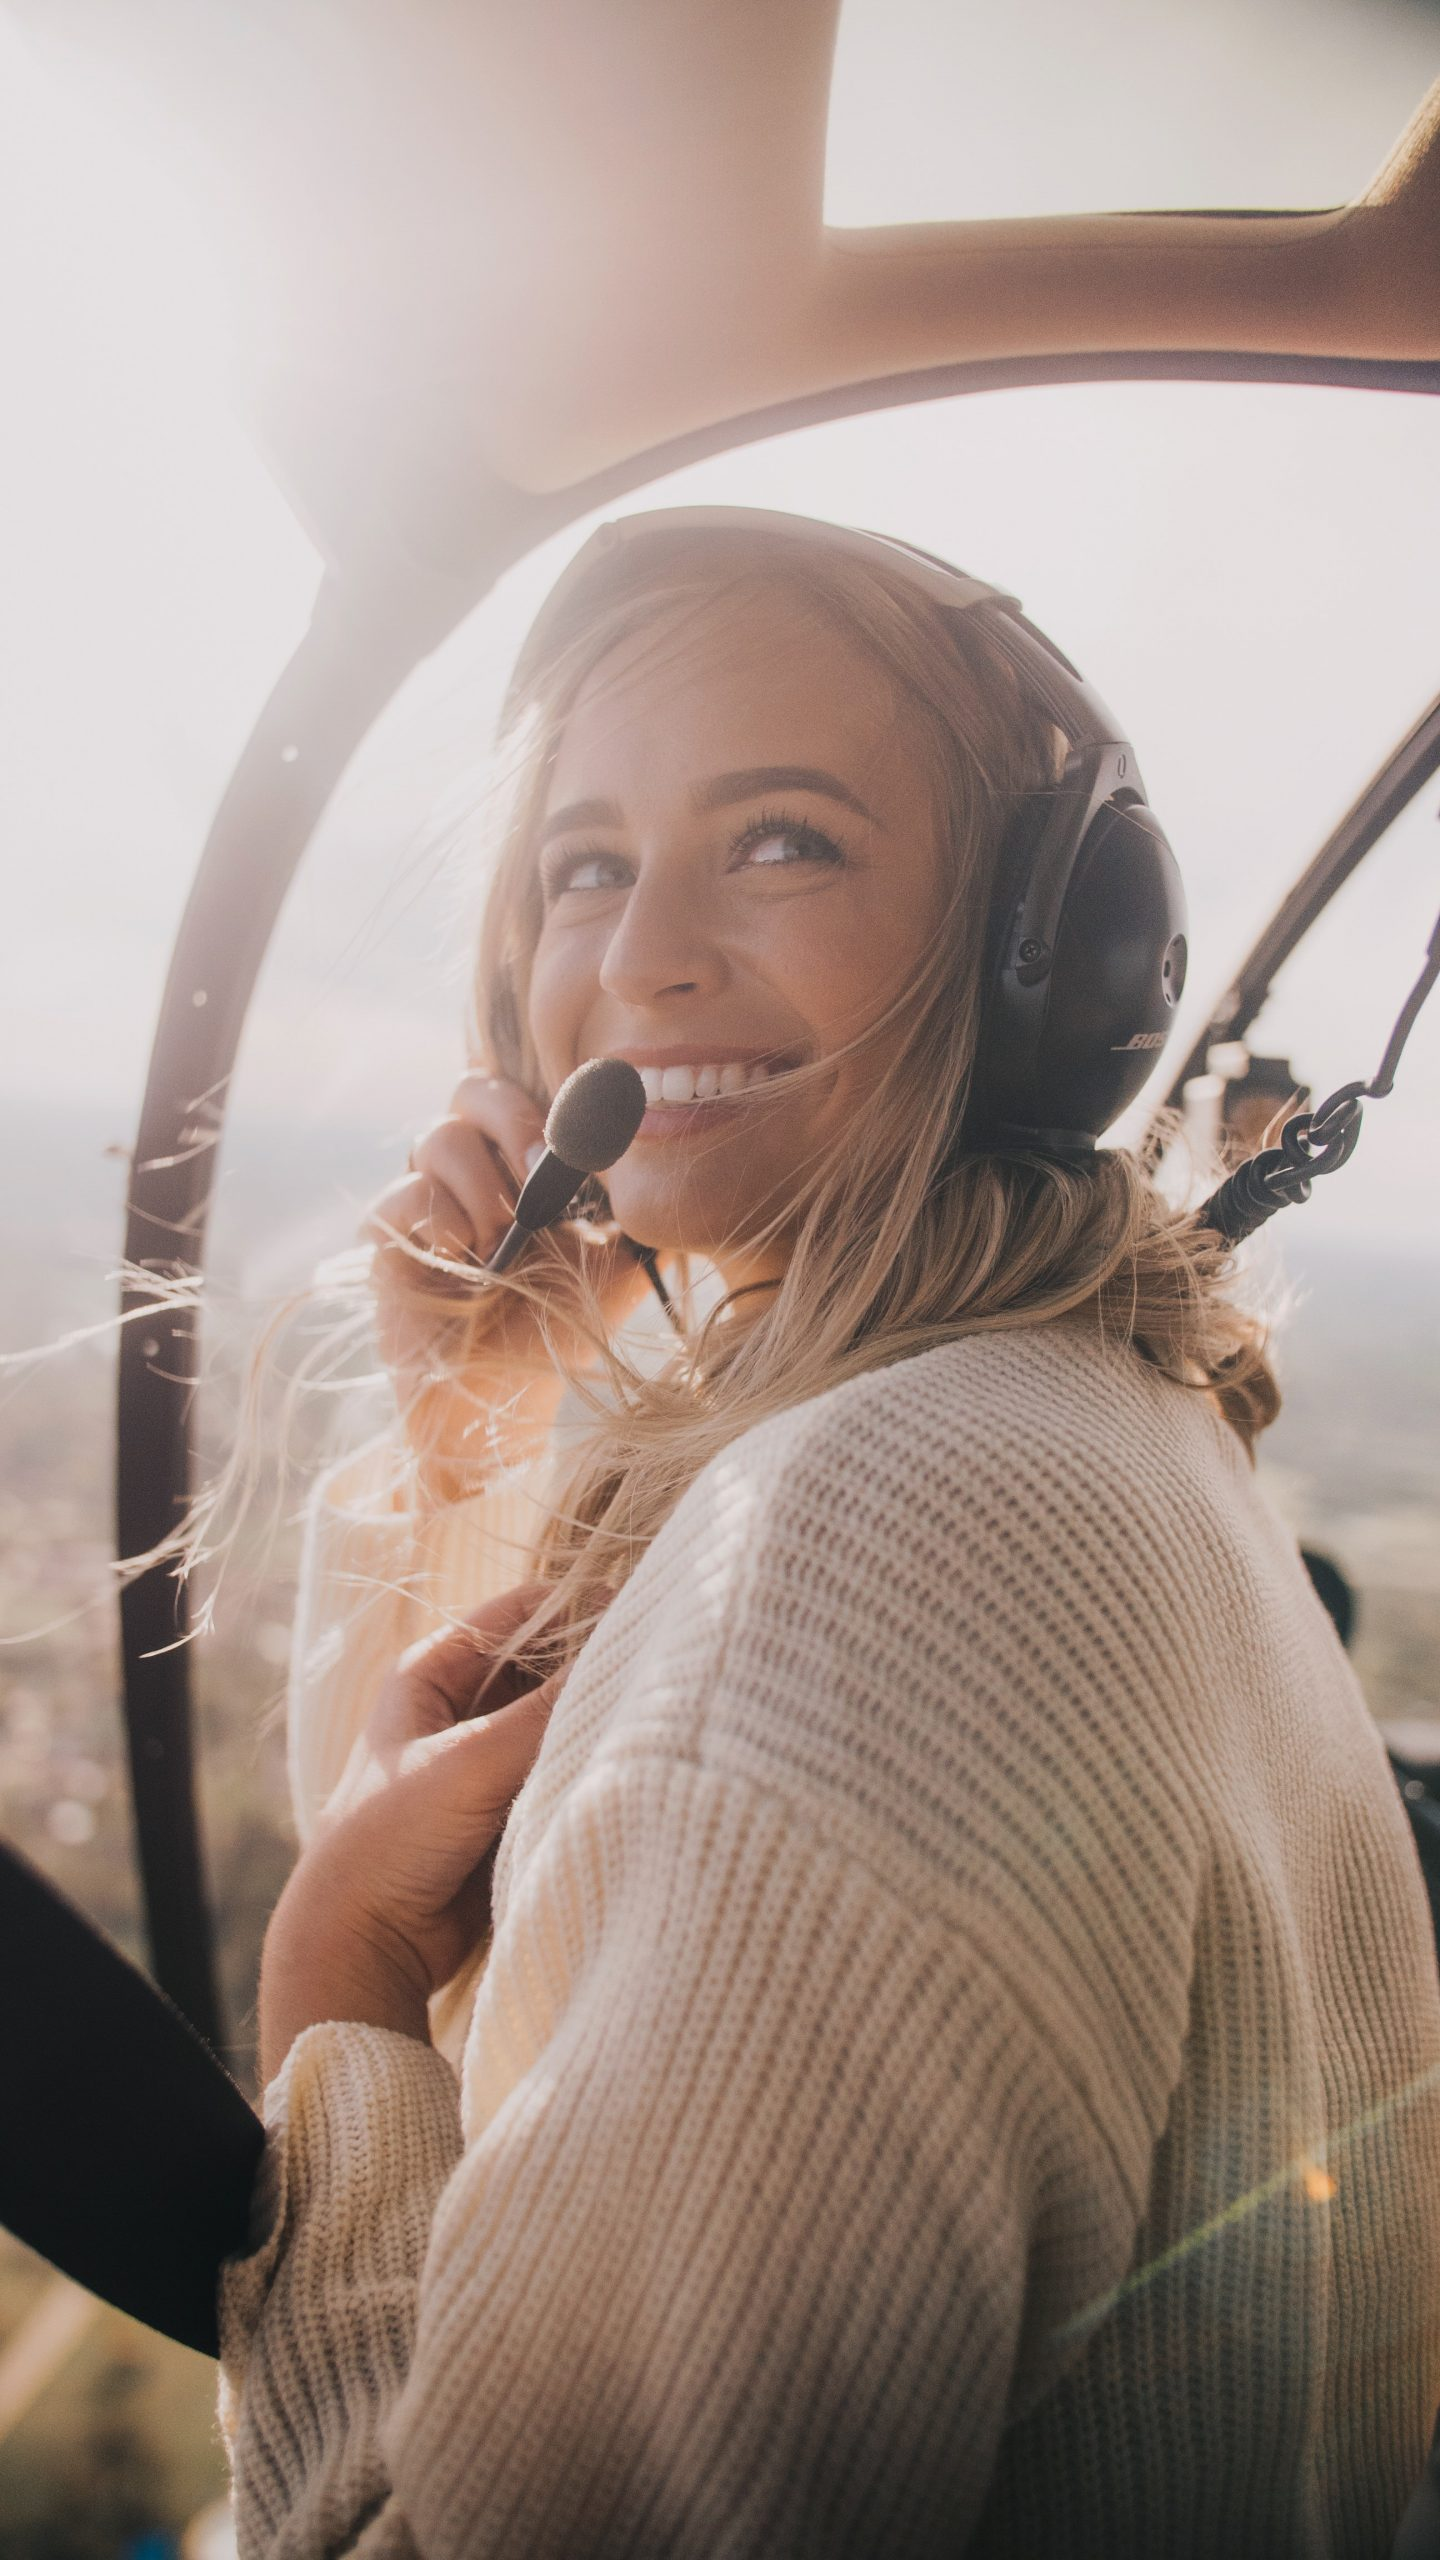 Smiling Woman flying a helicopter